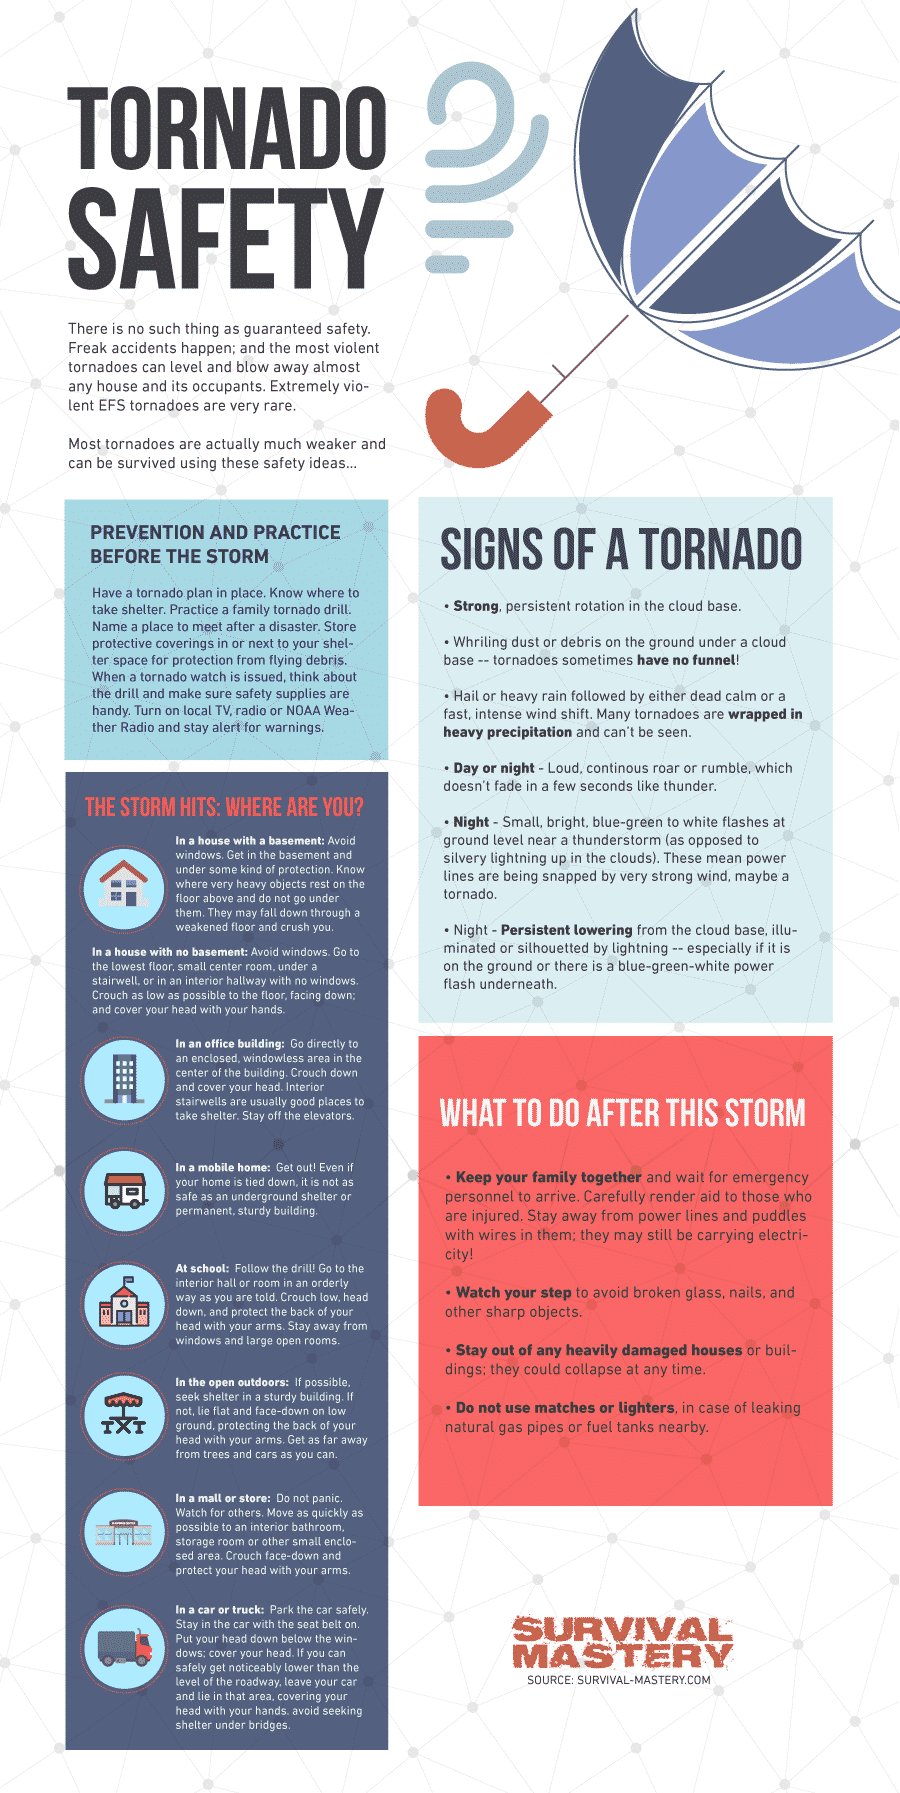 Tornado safety infographic